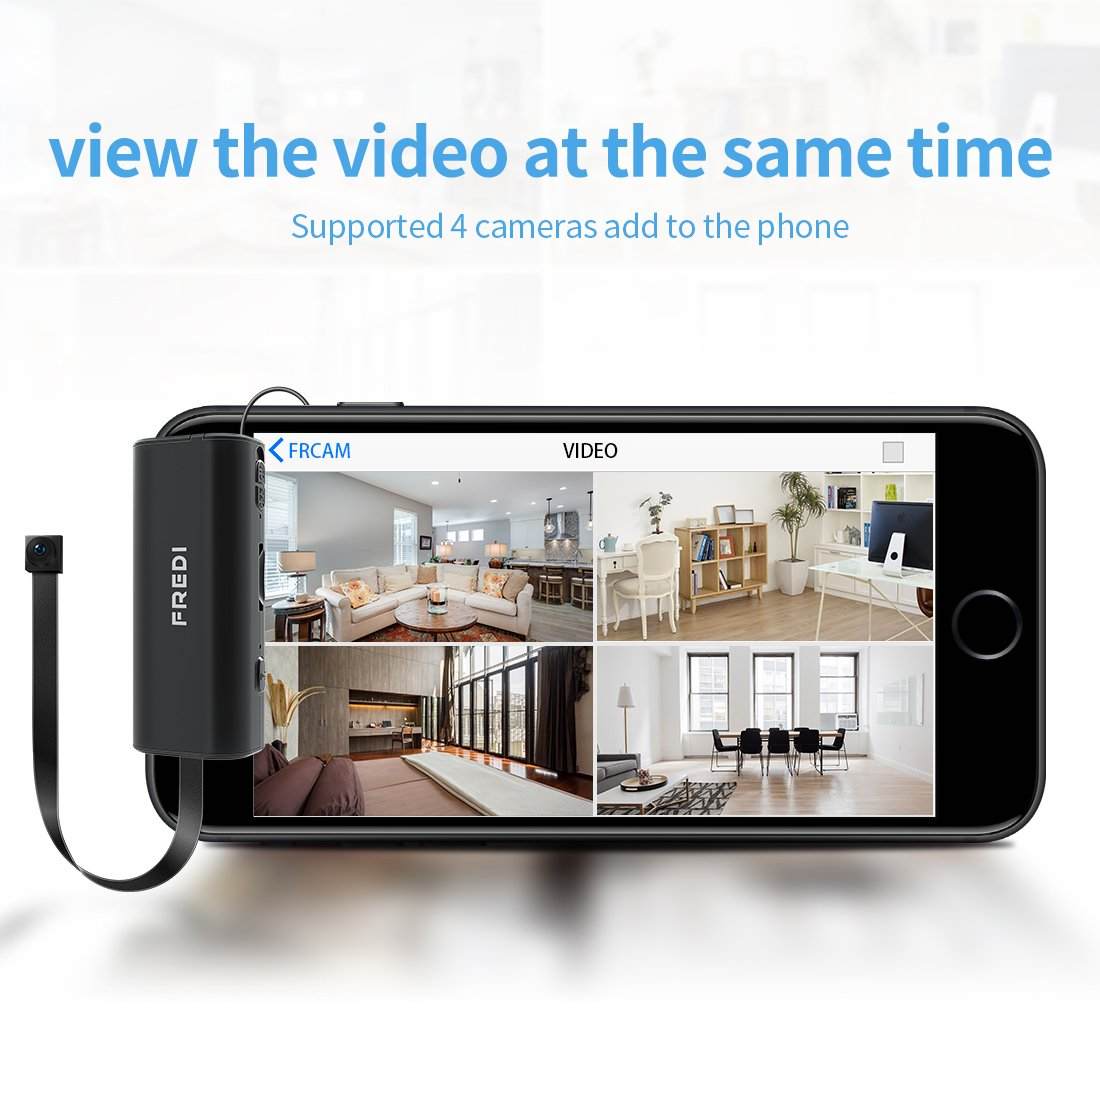 Hidden Camera,FREDI Spy Camera 720P Wireless WiFi IP Cameras Home/Office Security Mini Portable Covert Nanny Cam Works for iPhone iOS/Android mobilephone by FREDI (Image #3)